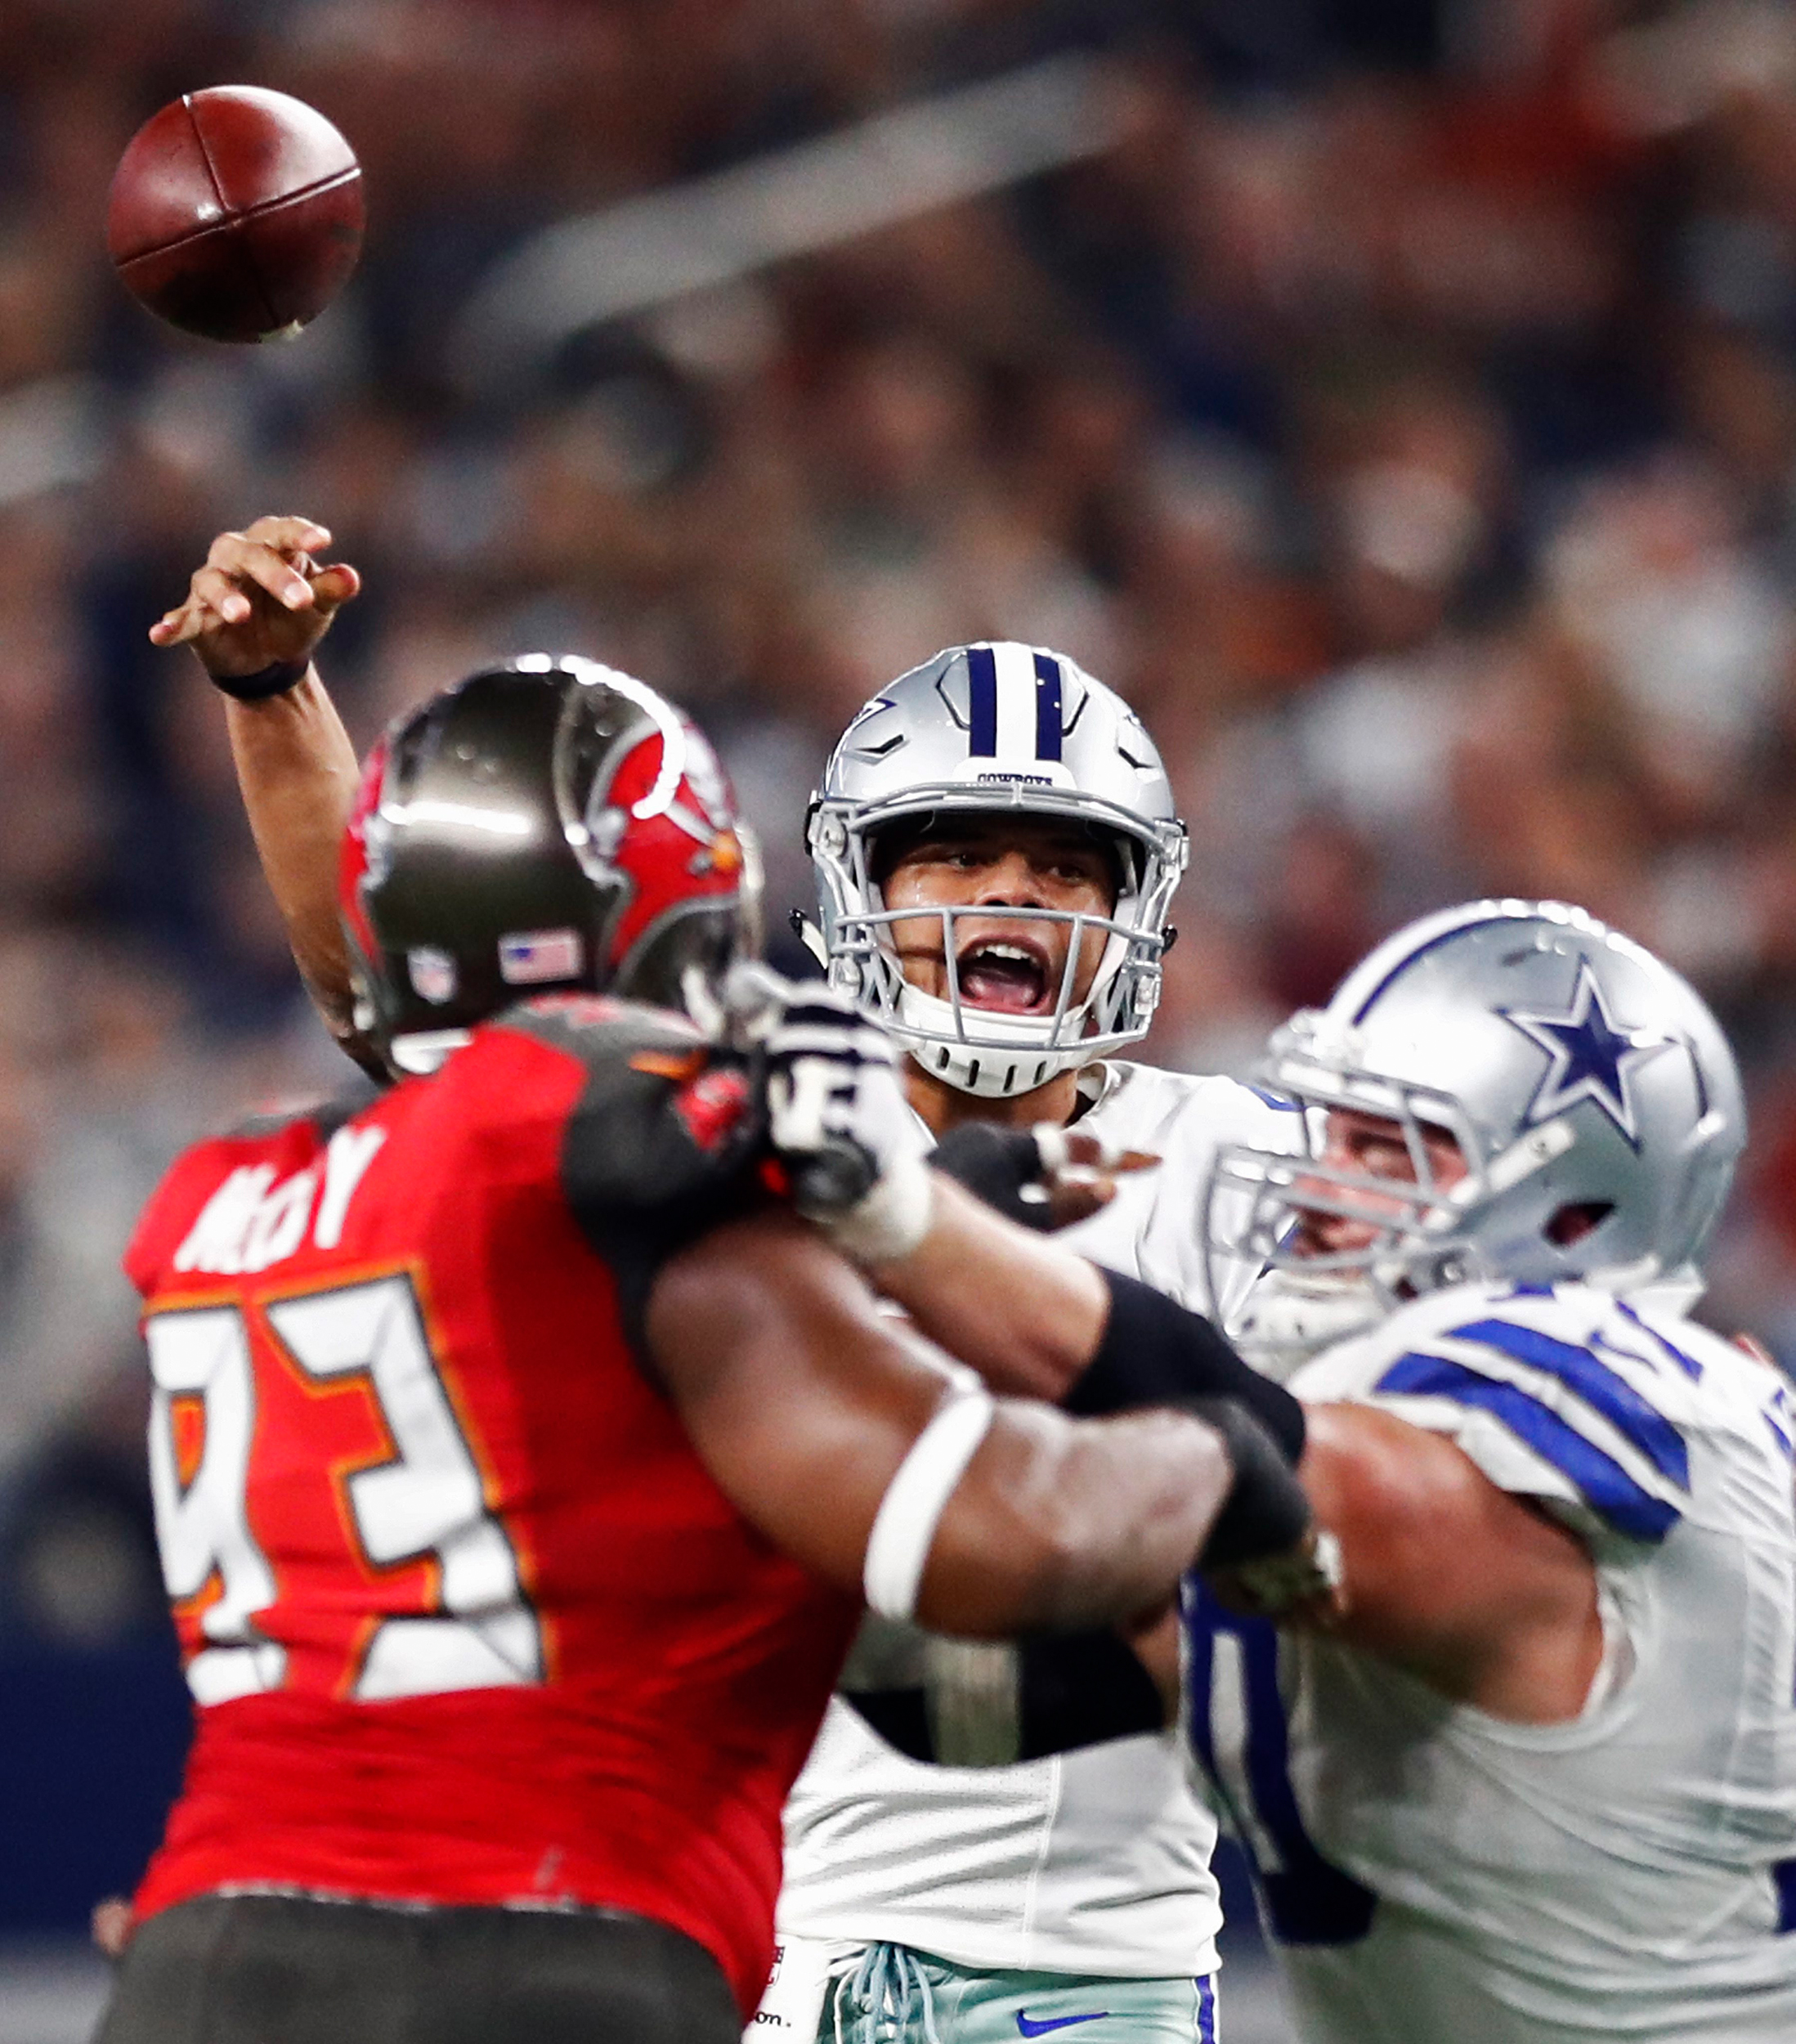 Dallas Cowboys quarterback Dak Prescott passes the ball against the Tampa Bay Buccaneers in the first half of their game at AT&T Stadium in Arlington, Texas, USA, 18 December 2016.